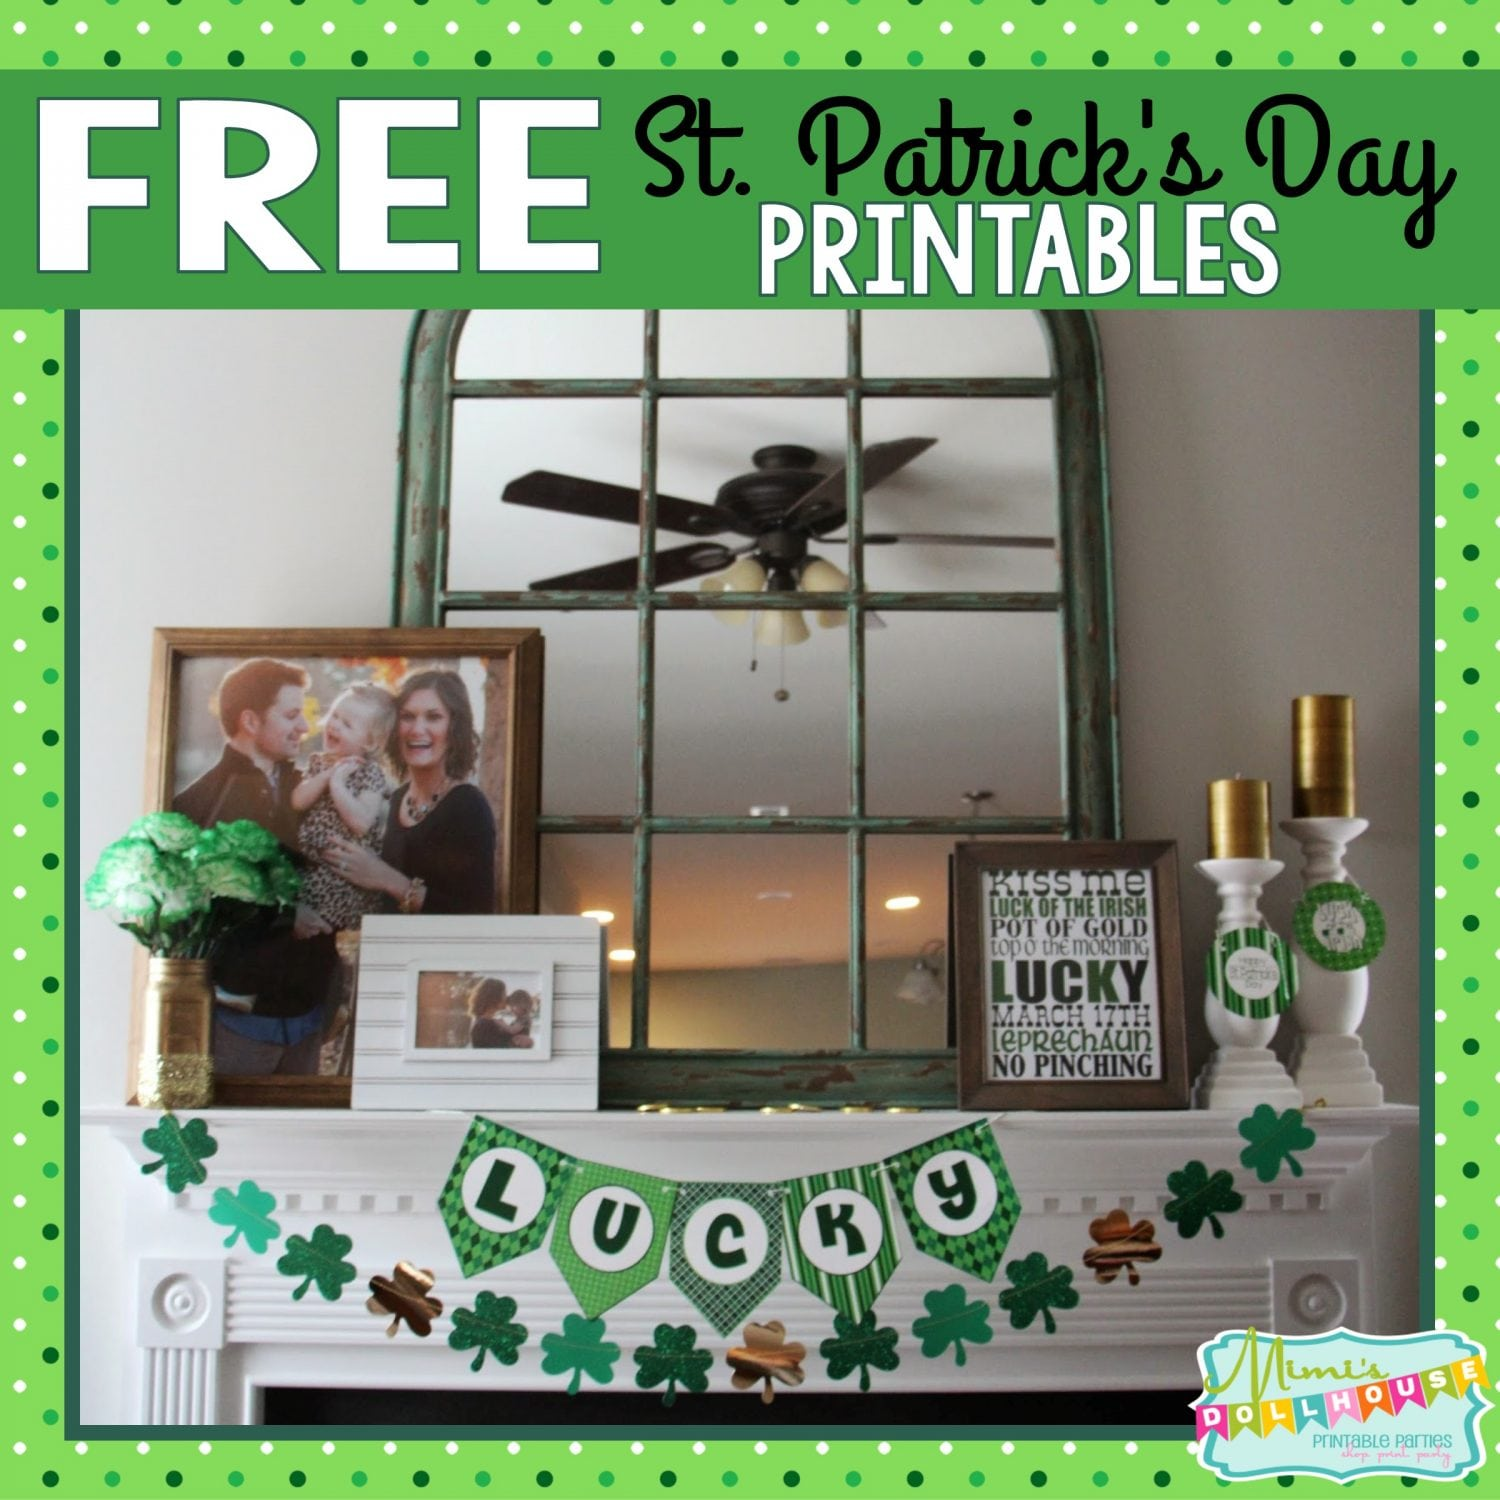 St. Patrick's Day: FREE St. Paddy's Day Printables